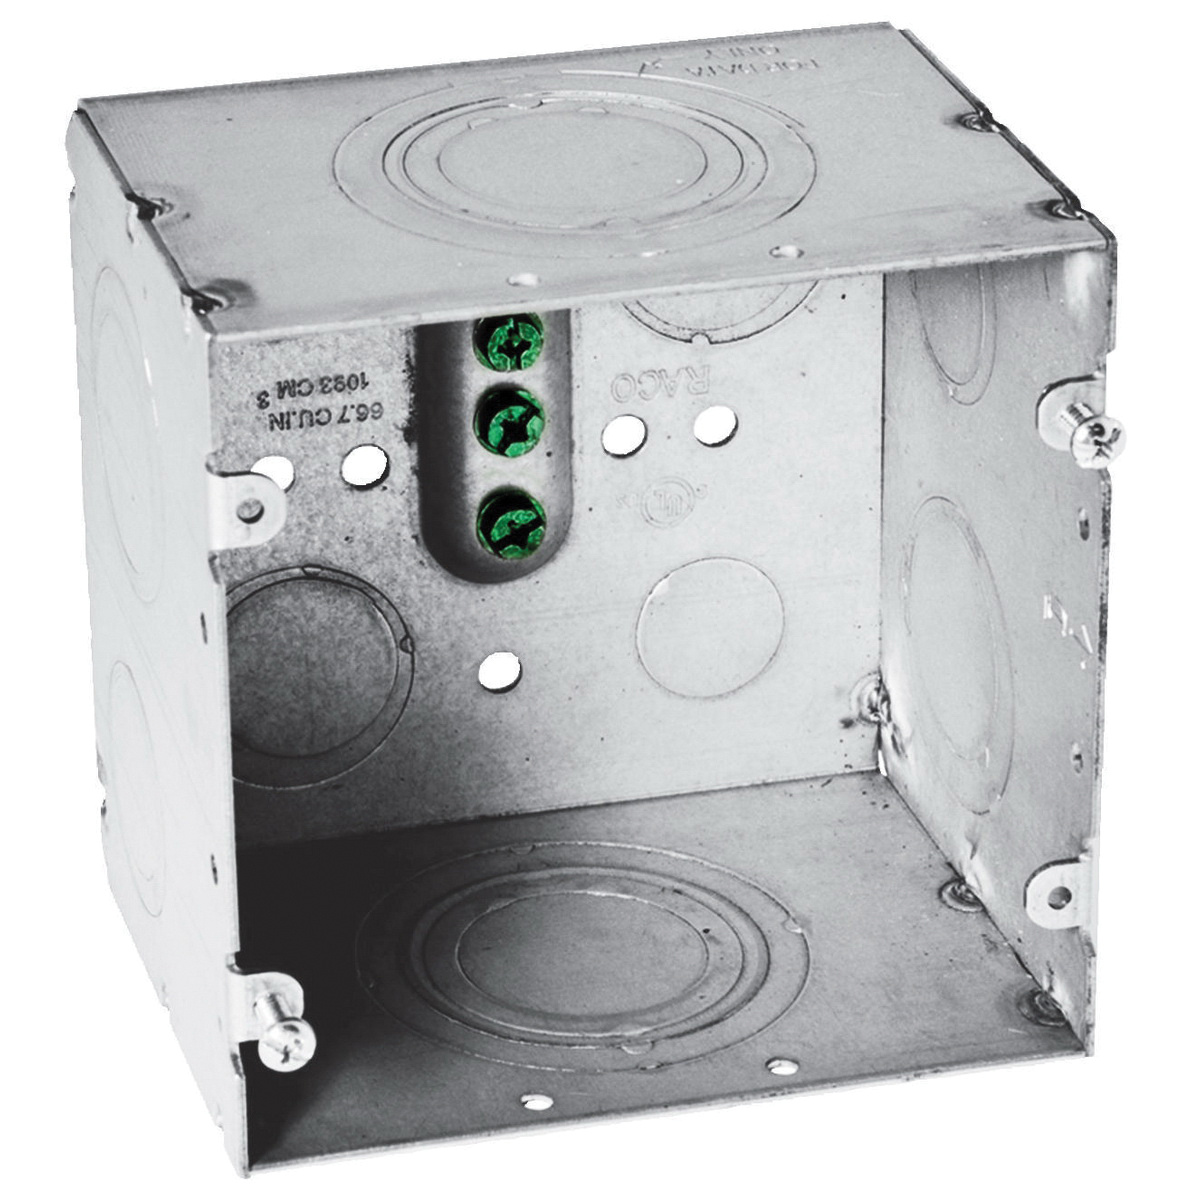 Miraculous Hubbell Wiring Hbl260 Steel Large Capacity Series Wall Box 4 11 16 Wiring 101 Cajosaxxcnl